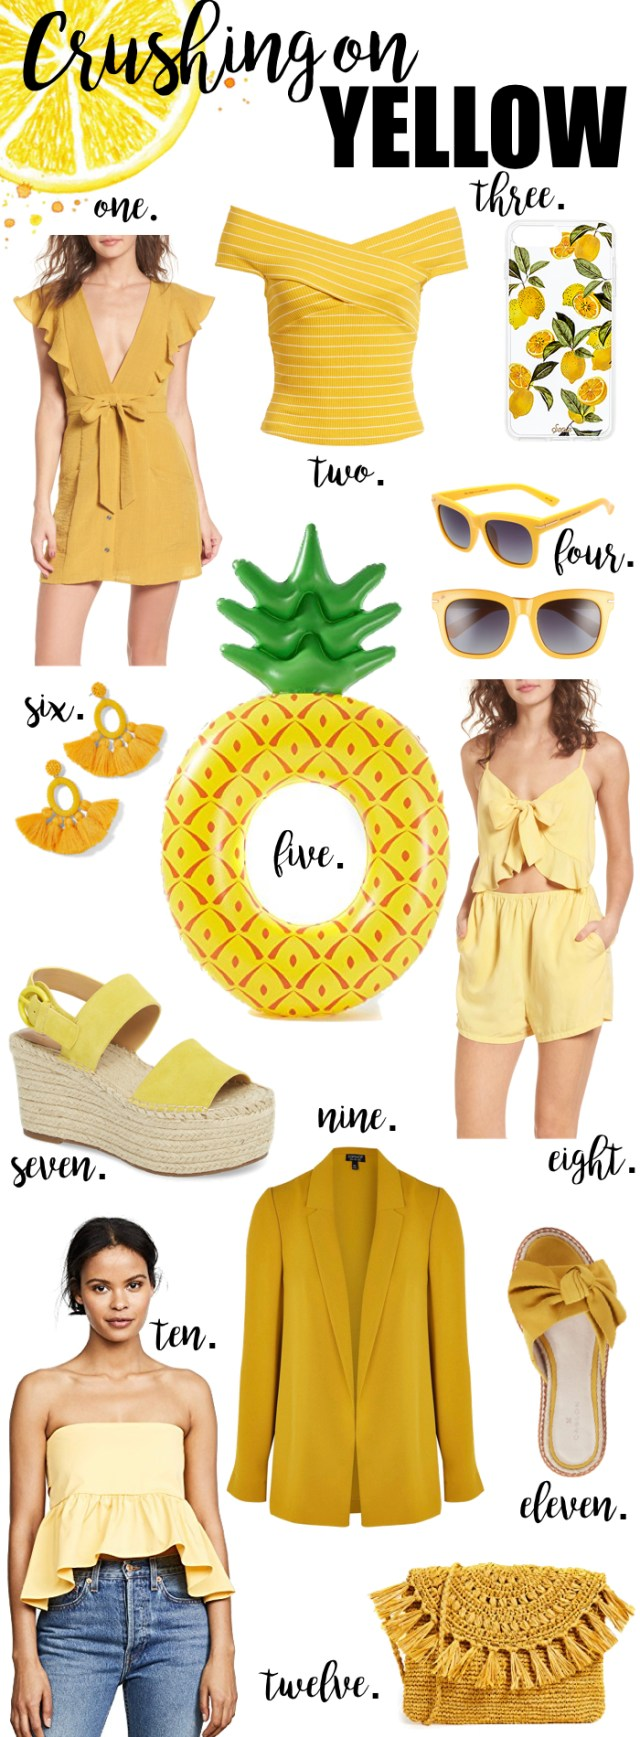 Crushing on Yellow, Yellow collage, Yellow fashion